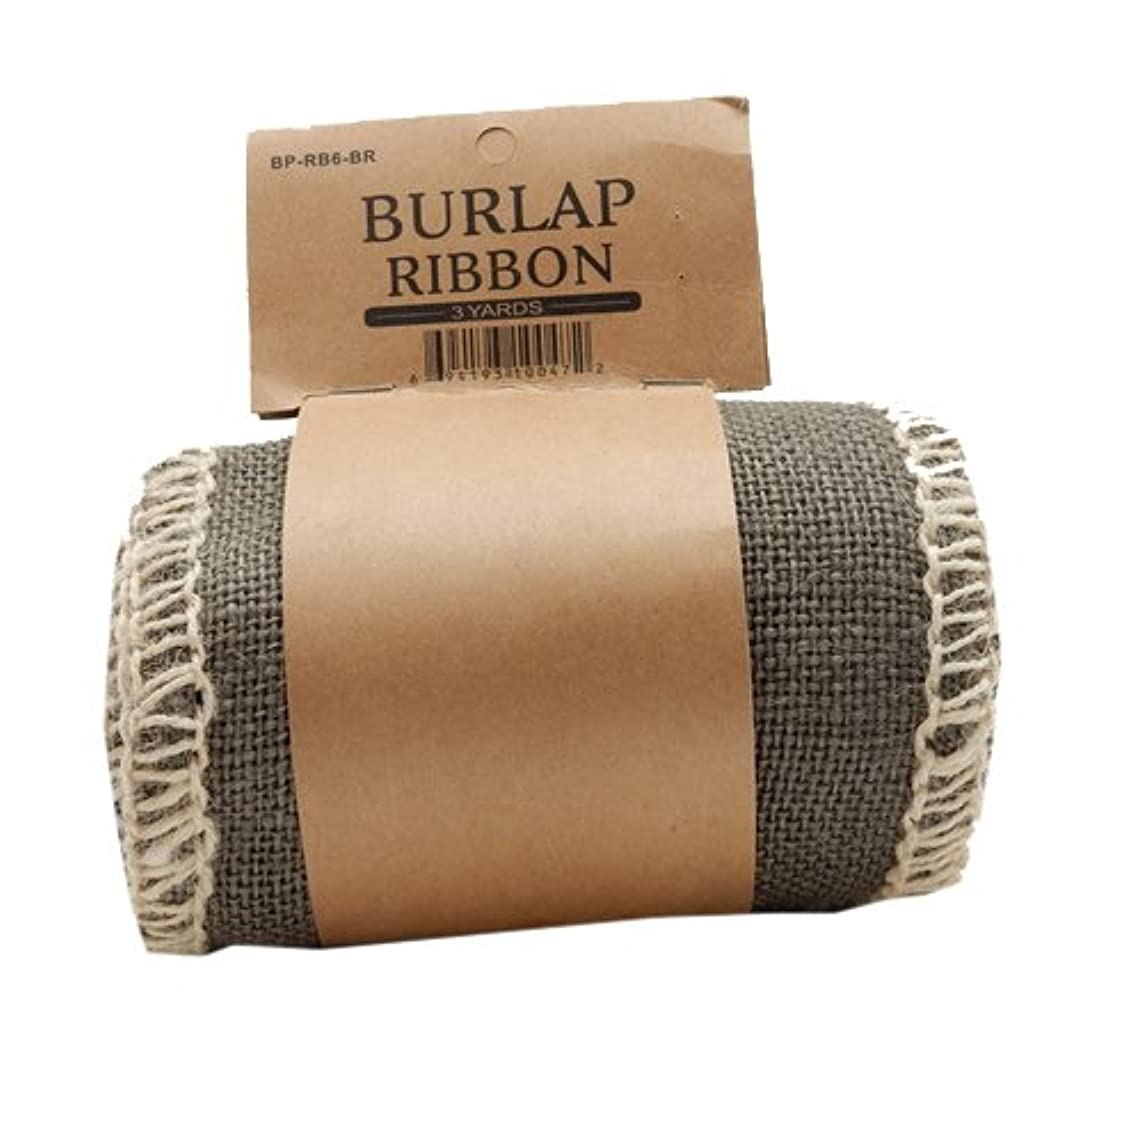 Green Pastures Wholesale Ribbon, 6-Inch by 3-Yard, Brown Burlap